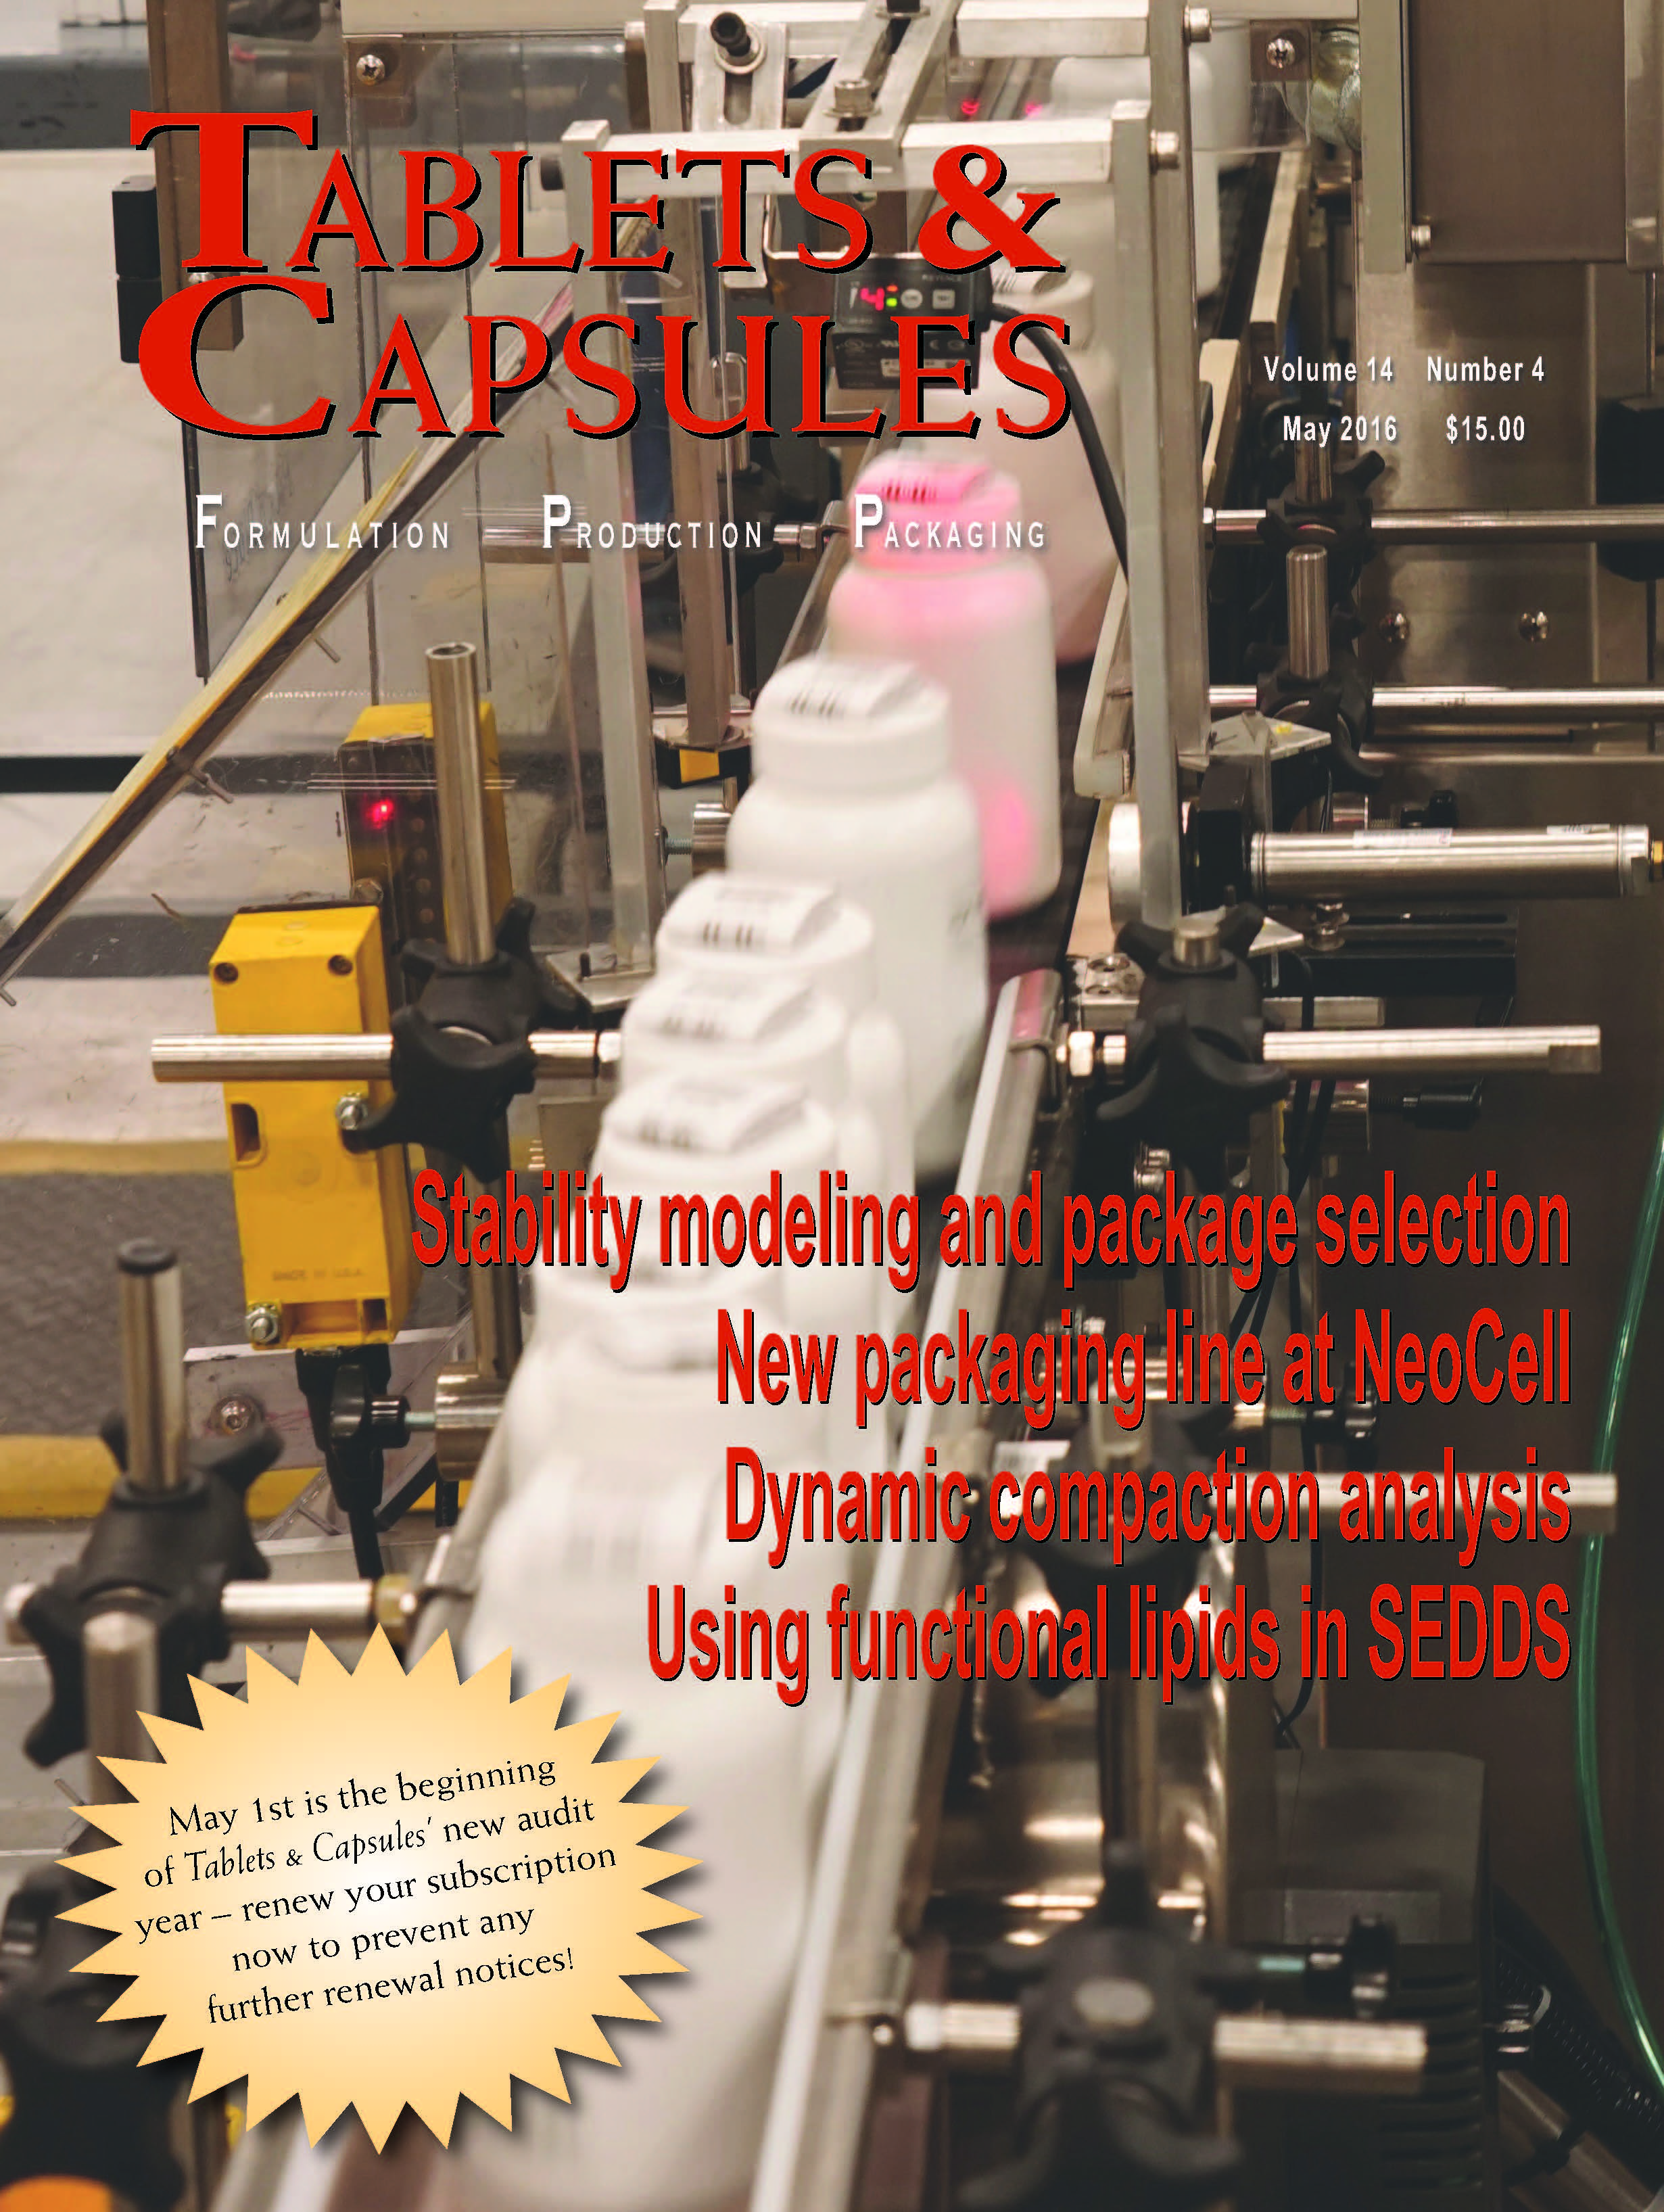 Tablets and Capsules May 2016 issue article for Drew John